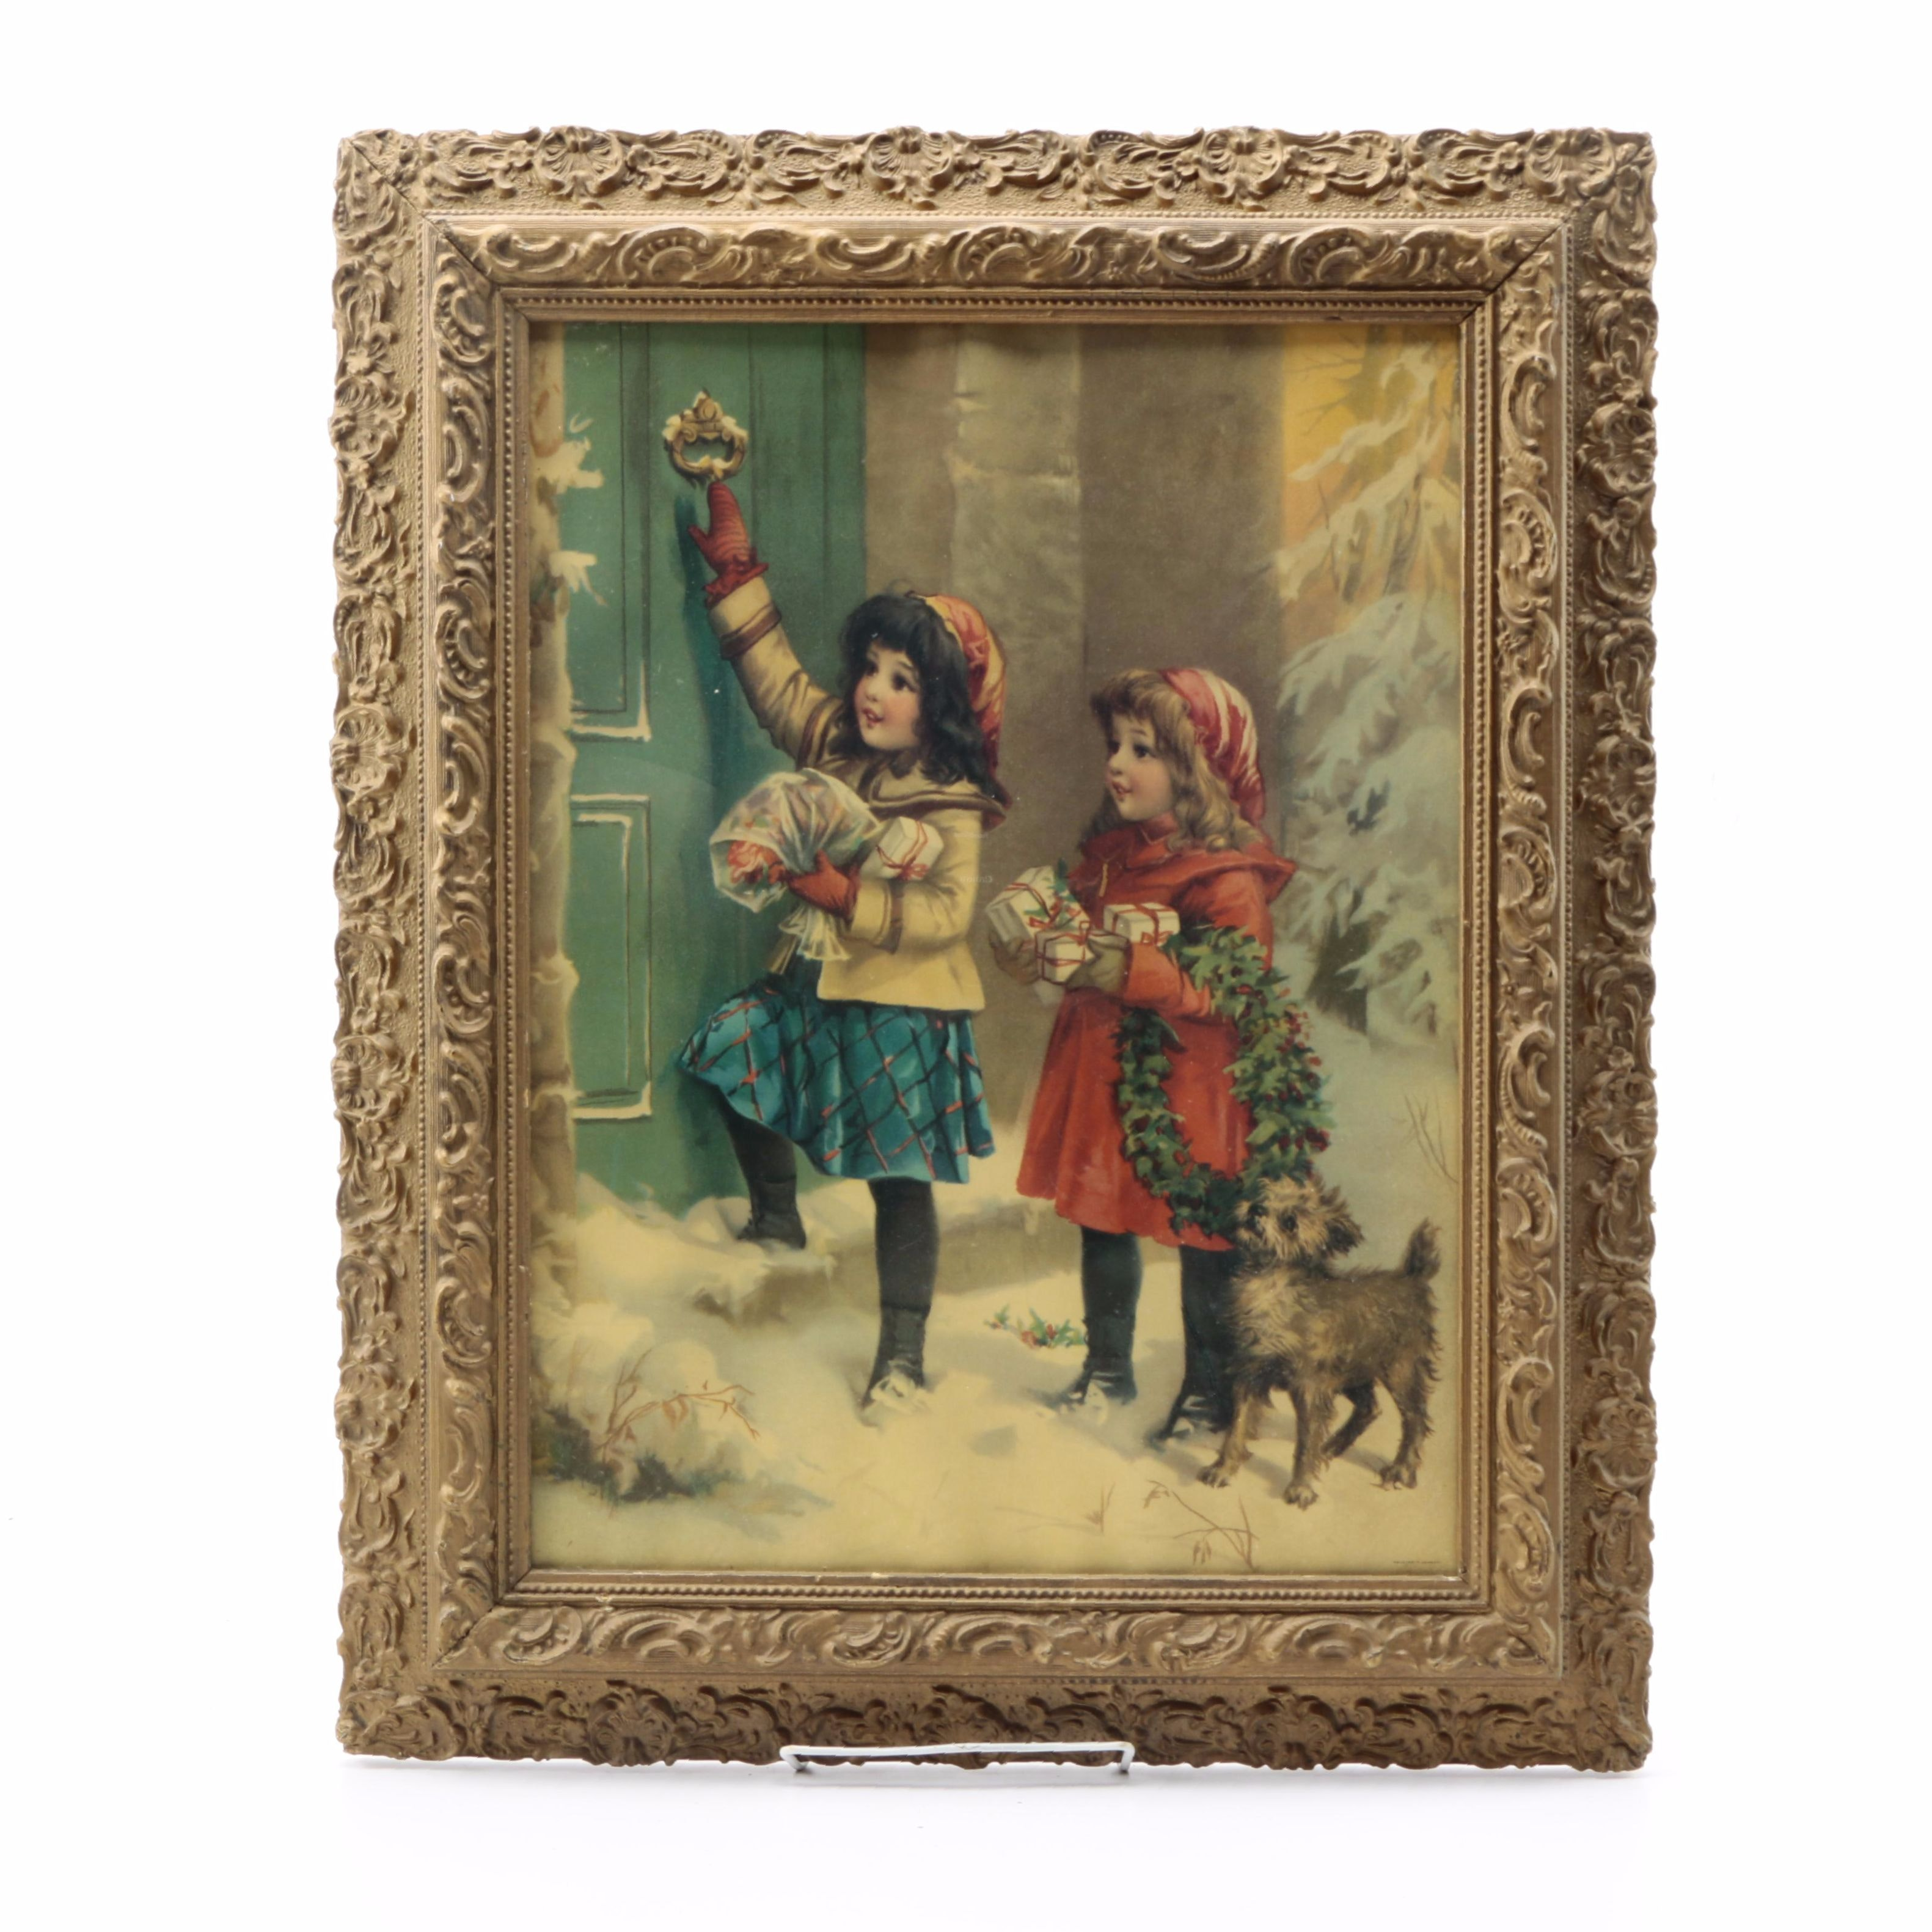 Offset Lithograph of a Vintage Christmas Card